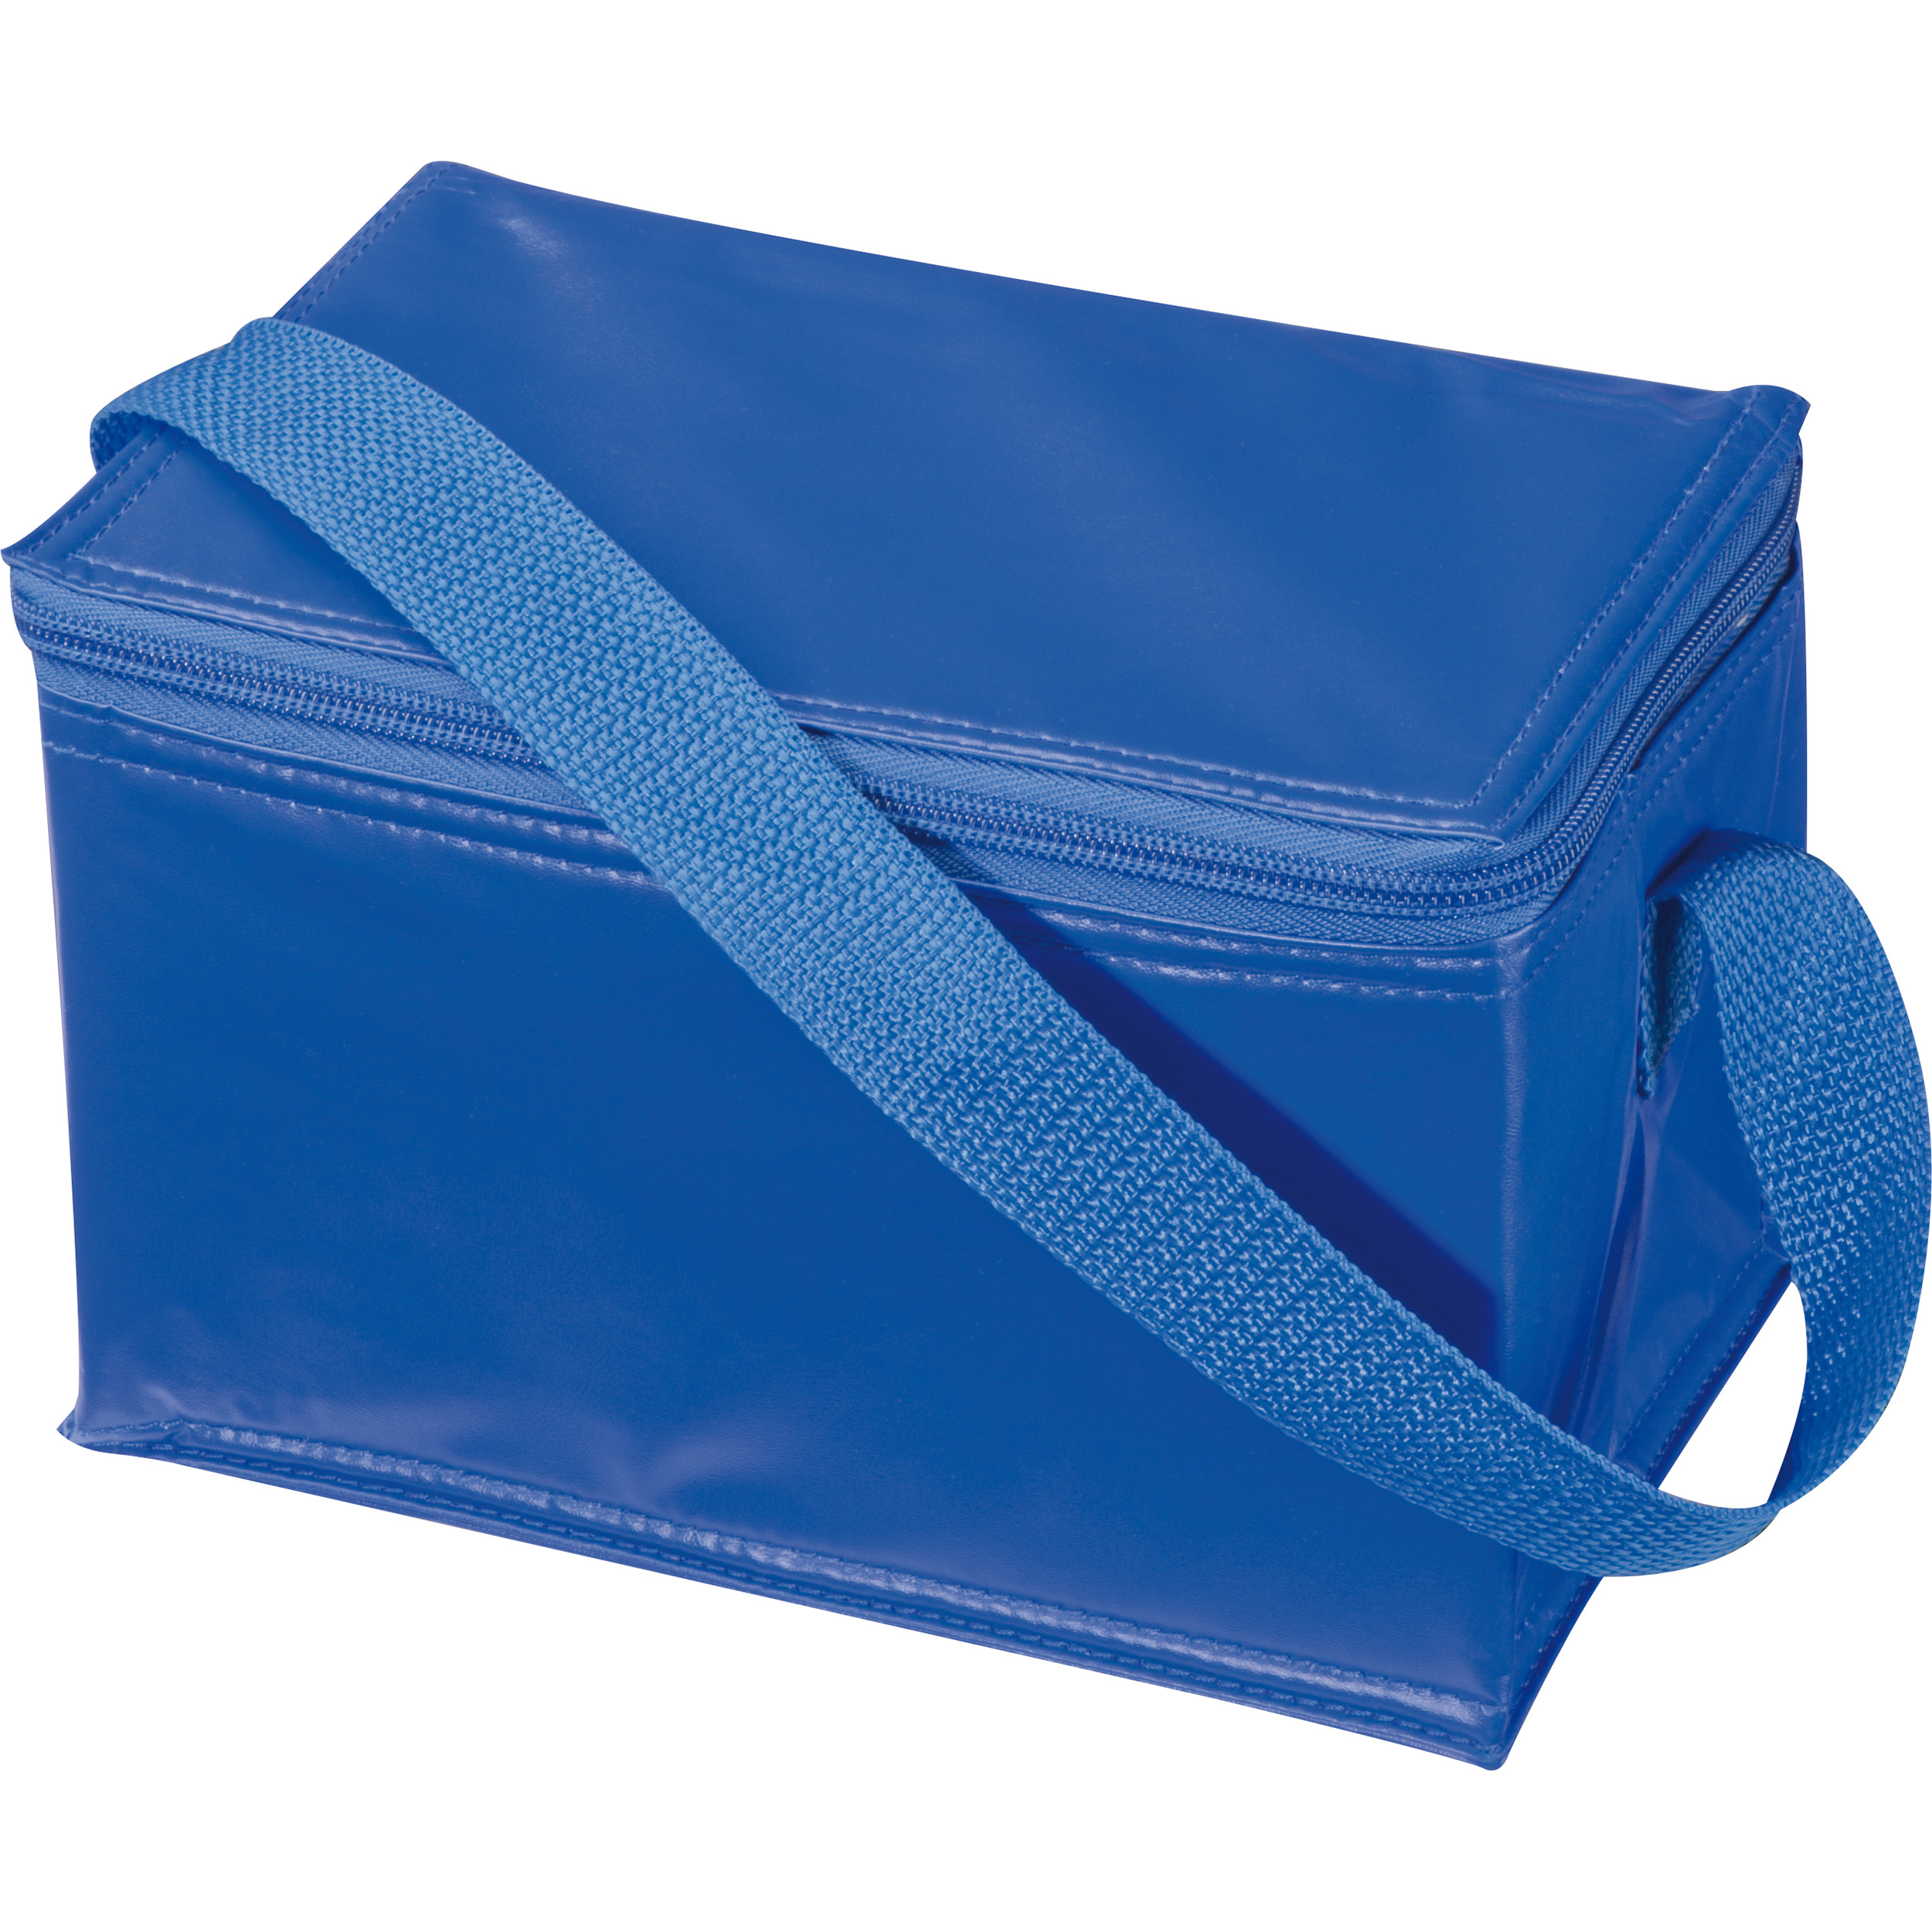 Mini polyester cooler bag for 6 cans